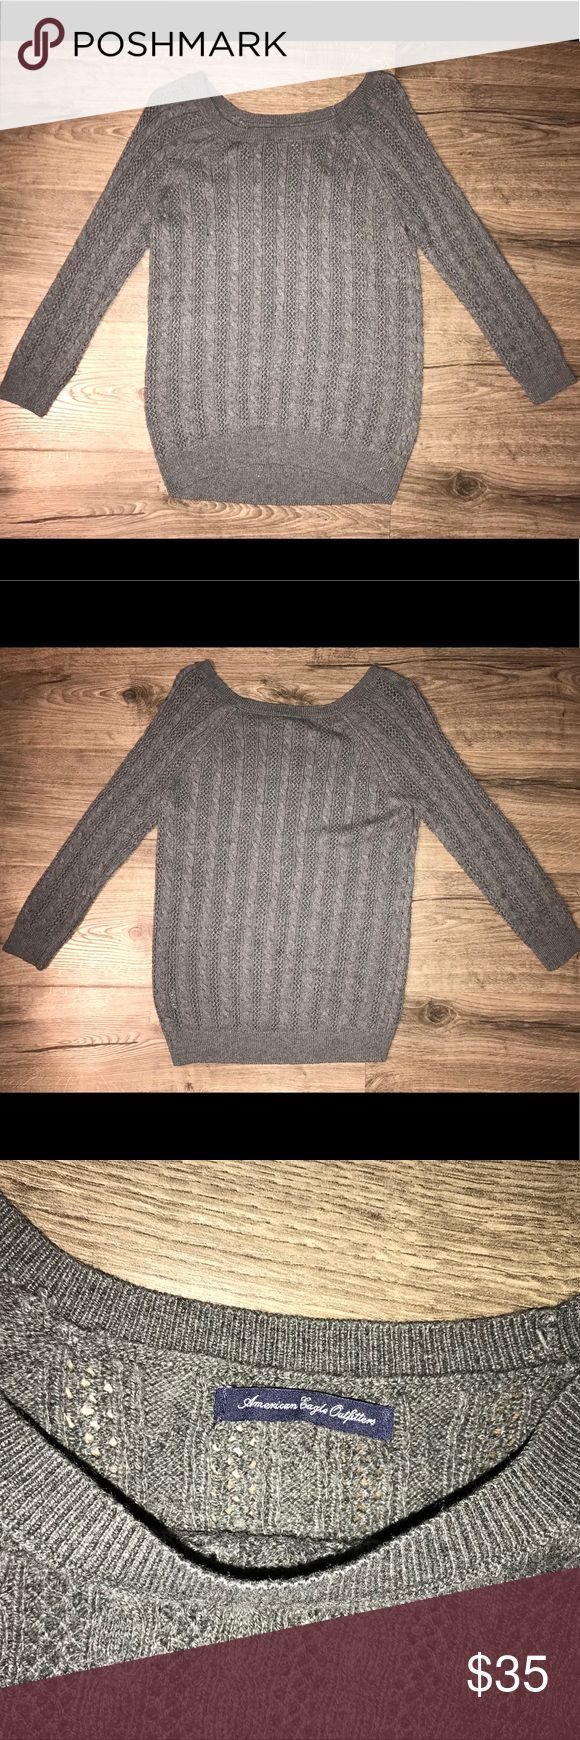 American Eagle Sweater 3/4 sleeves. Great Condition. American Eagle Outfitters Tops Sweatshirts & Hoodies #americaneagleoutfitters